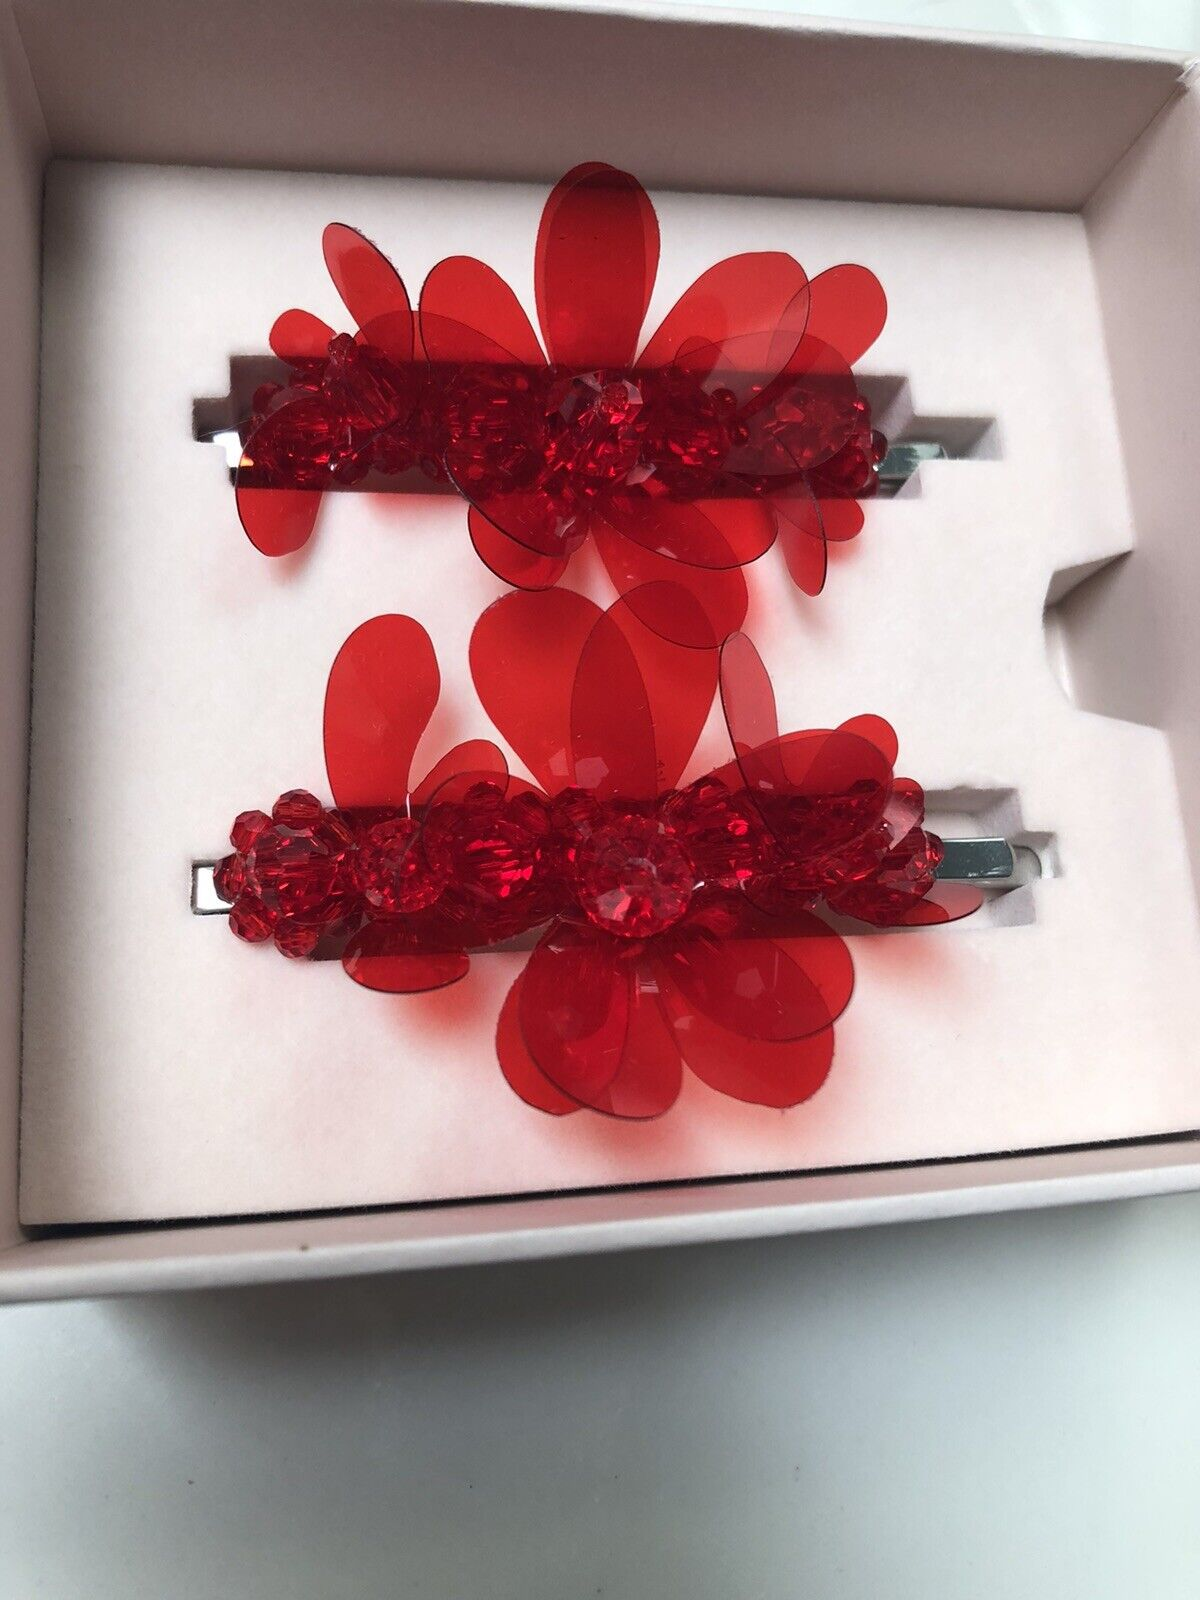 Simone Rocha H&M Red Flower Glass Beads Hair Pins Clips Set of 2 NEW IN BOX